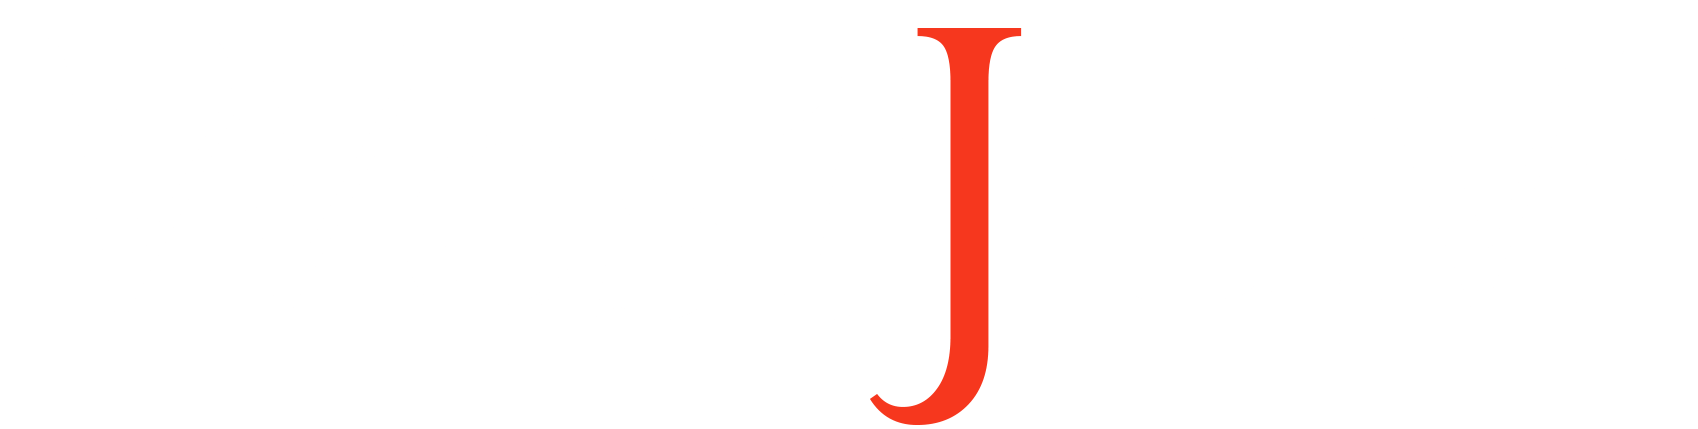 eNewsletter - The Western Journal of Emergency Medicine